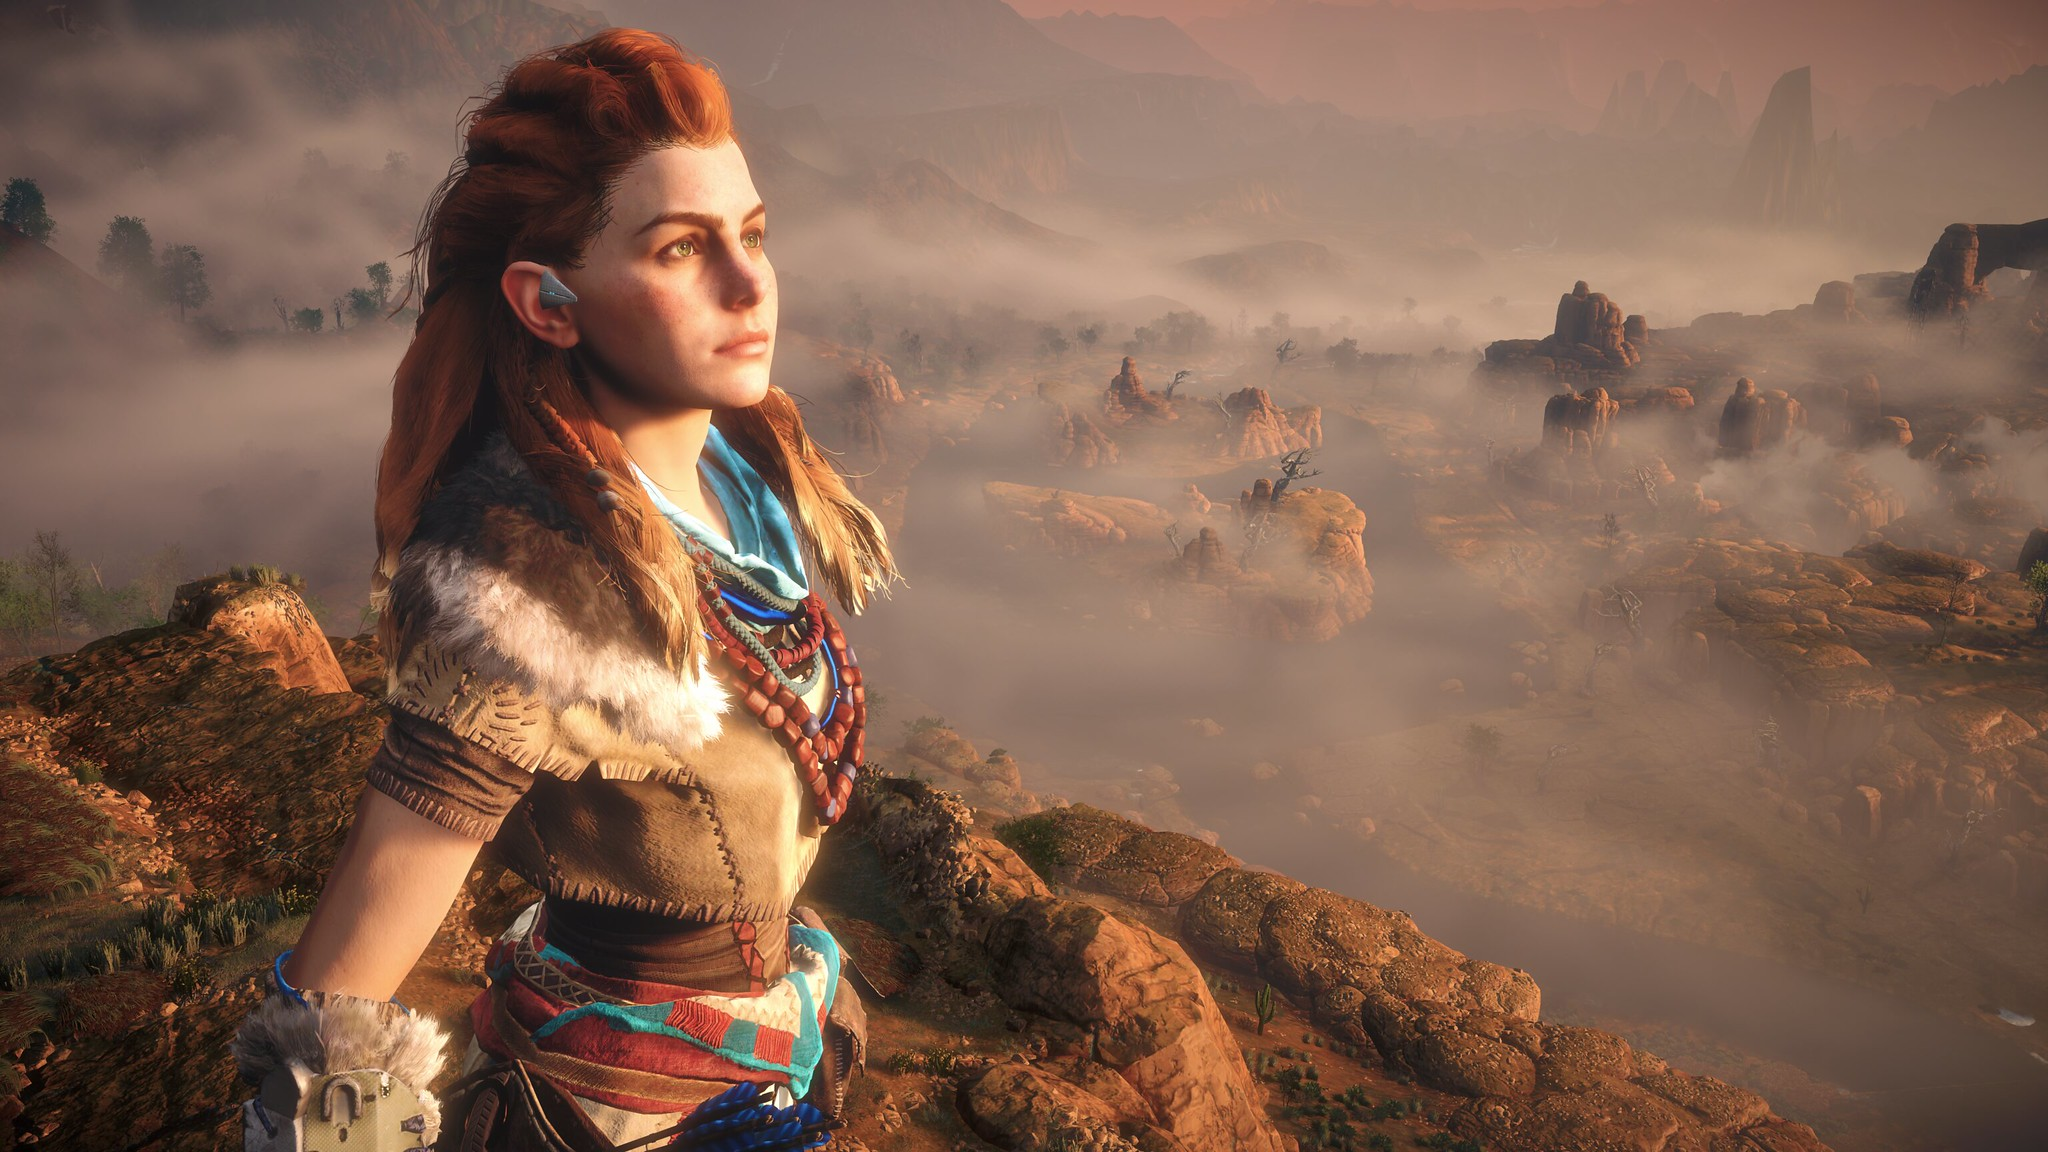 Aloy of Horizon Zero Dawn in the mountains surrounded by mist